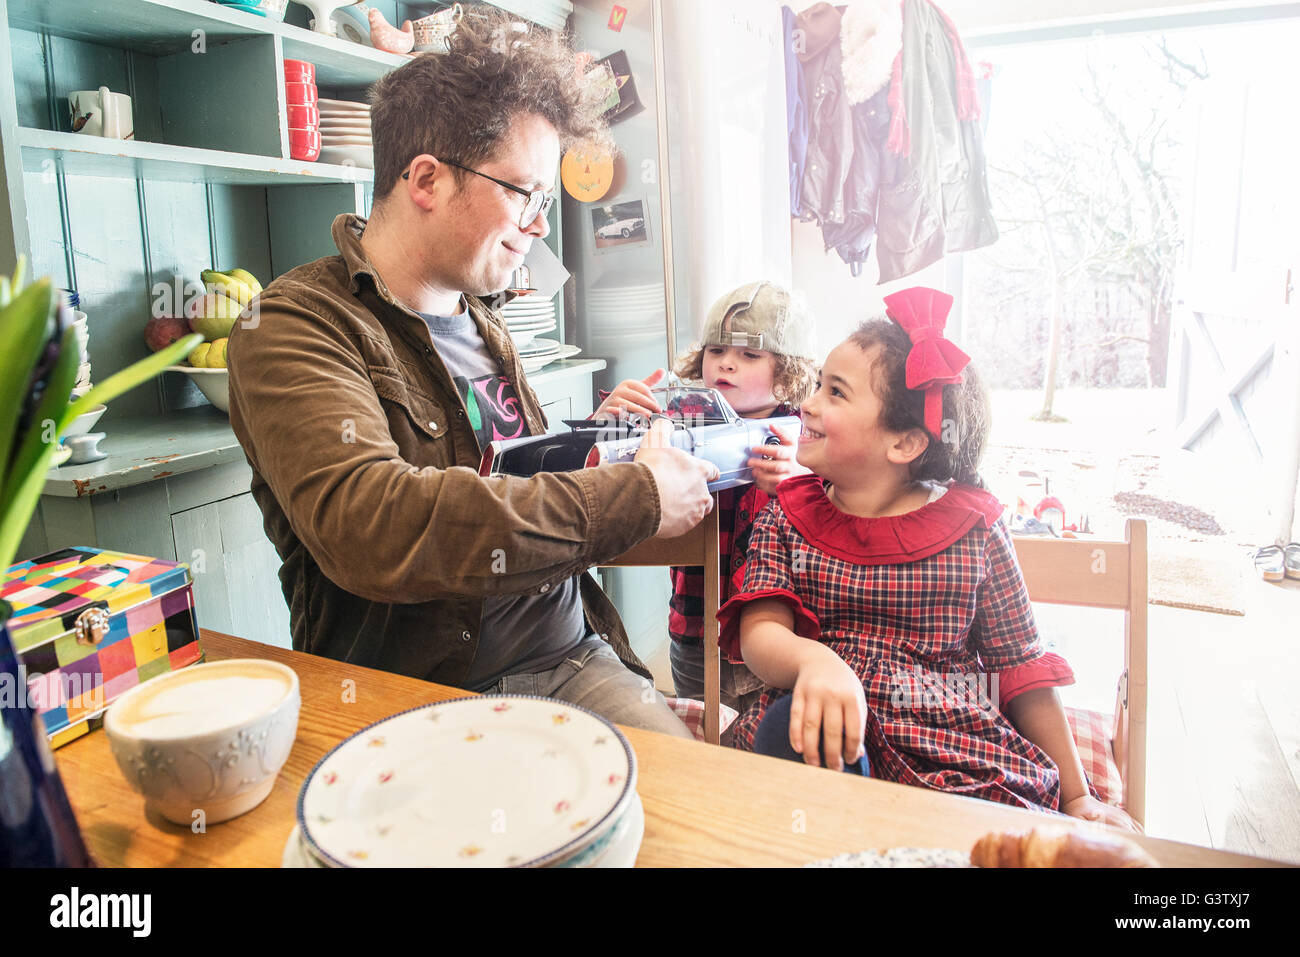 A father sits in his kitchen chatting to his young son and daughter. - Stock Image